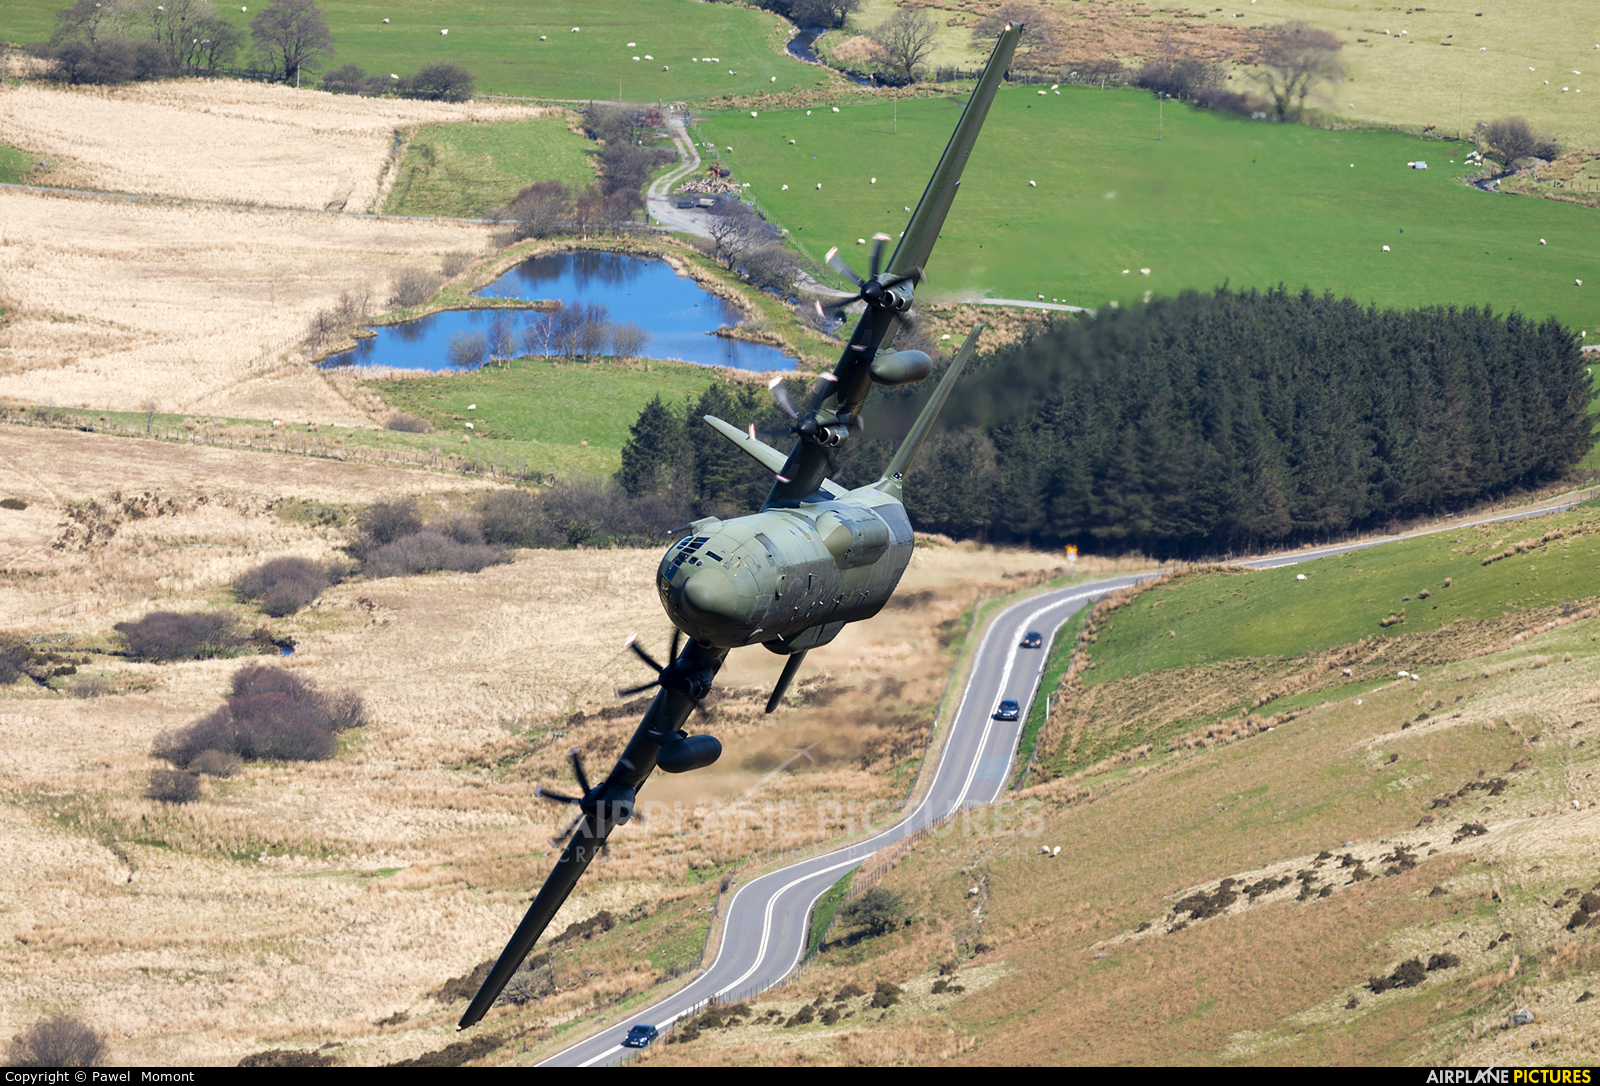 Royal Air Force ZH871 aircraft at Machynlleth Loop - LFA 7